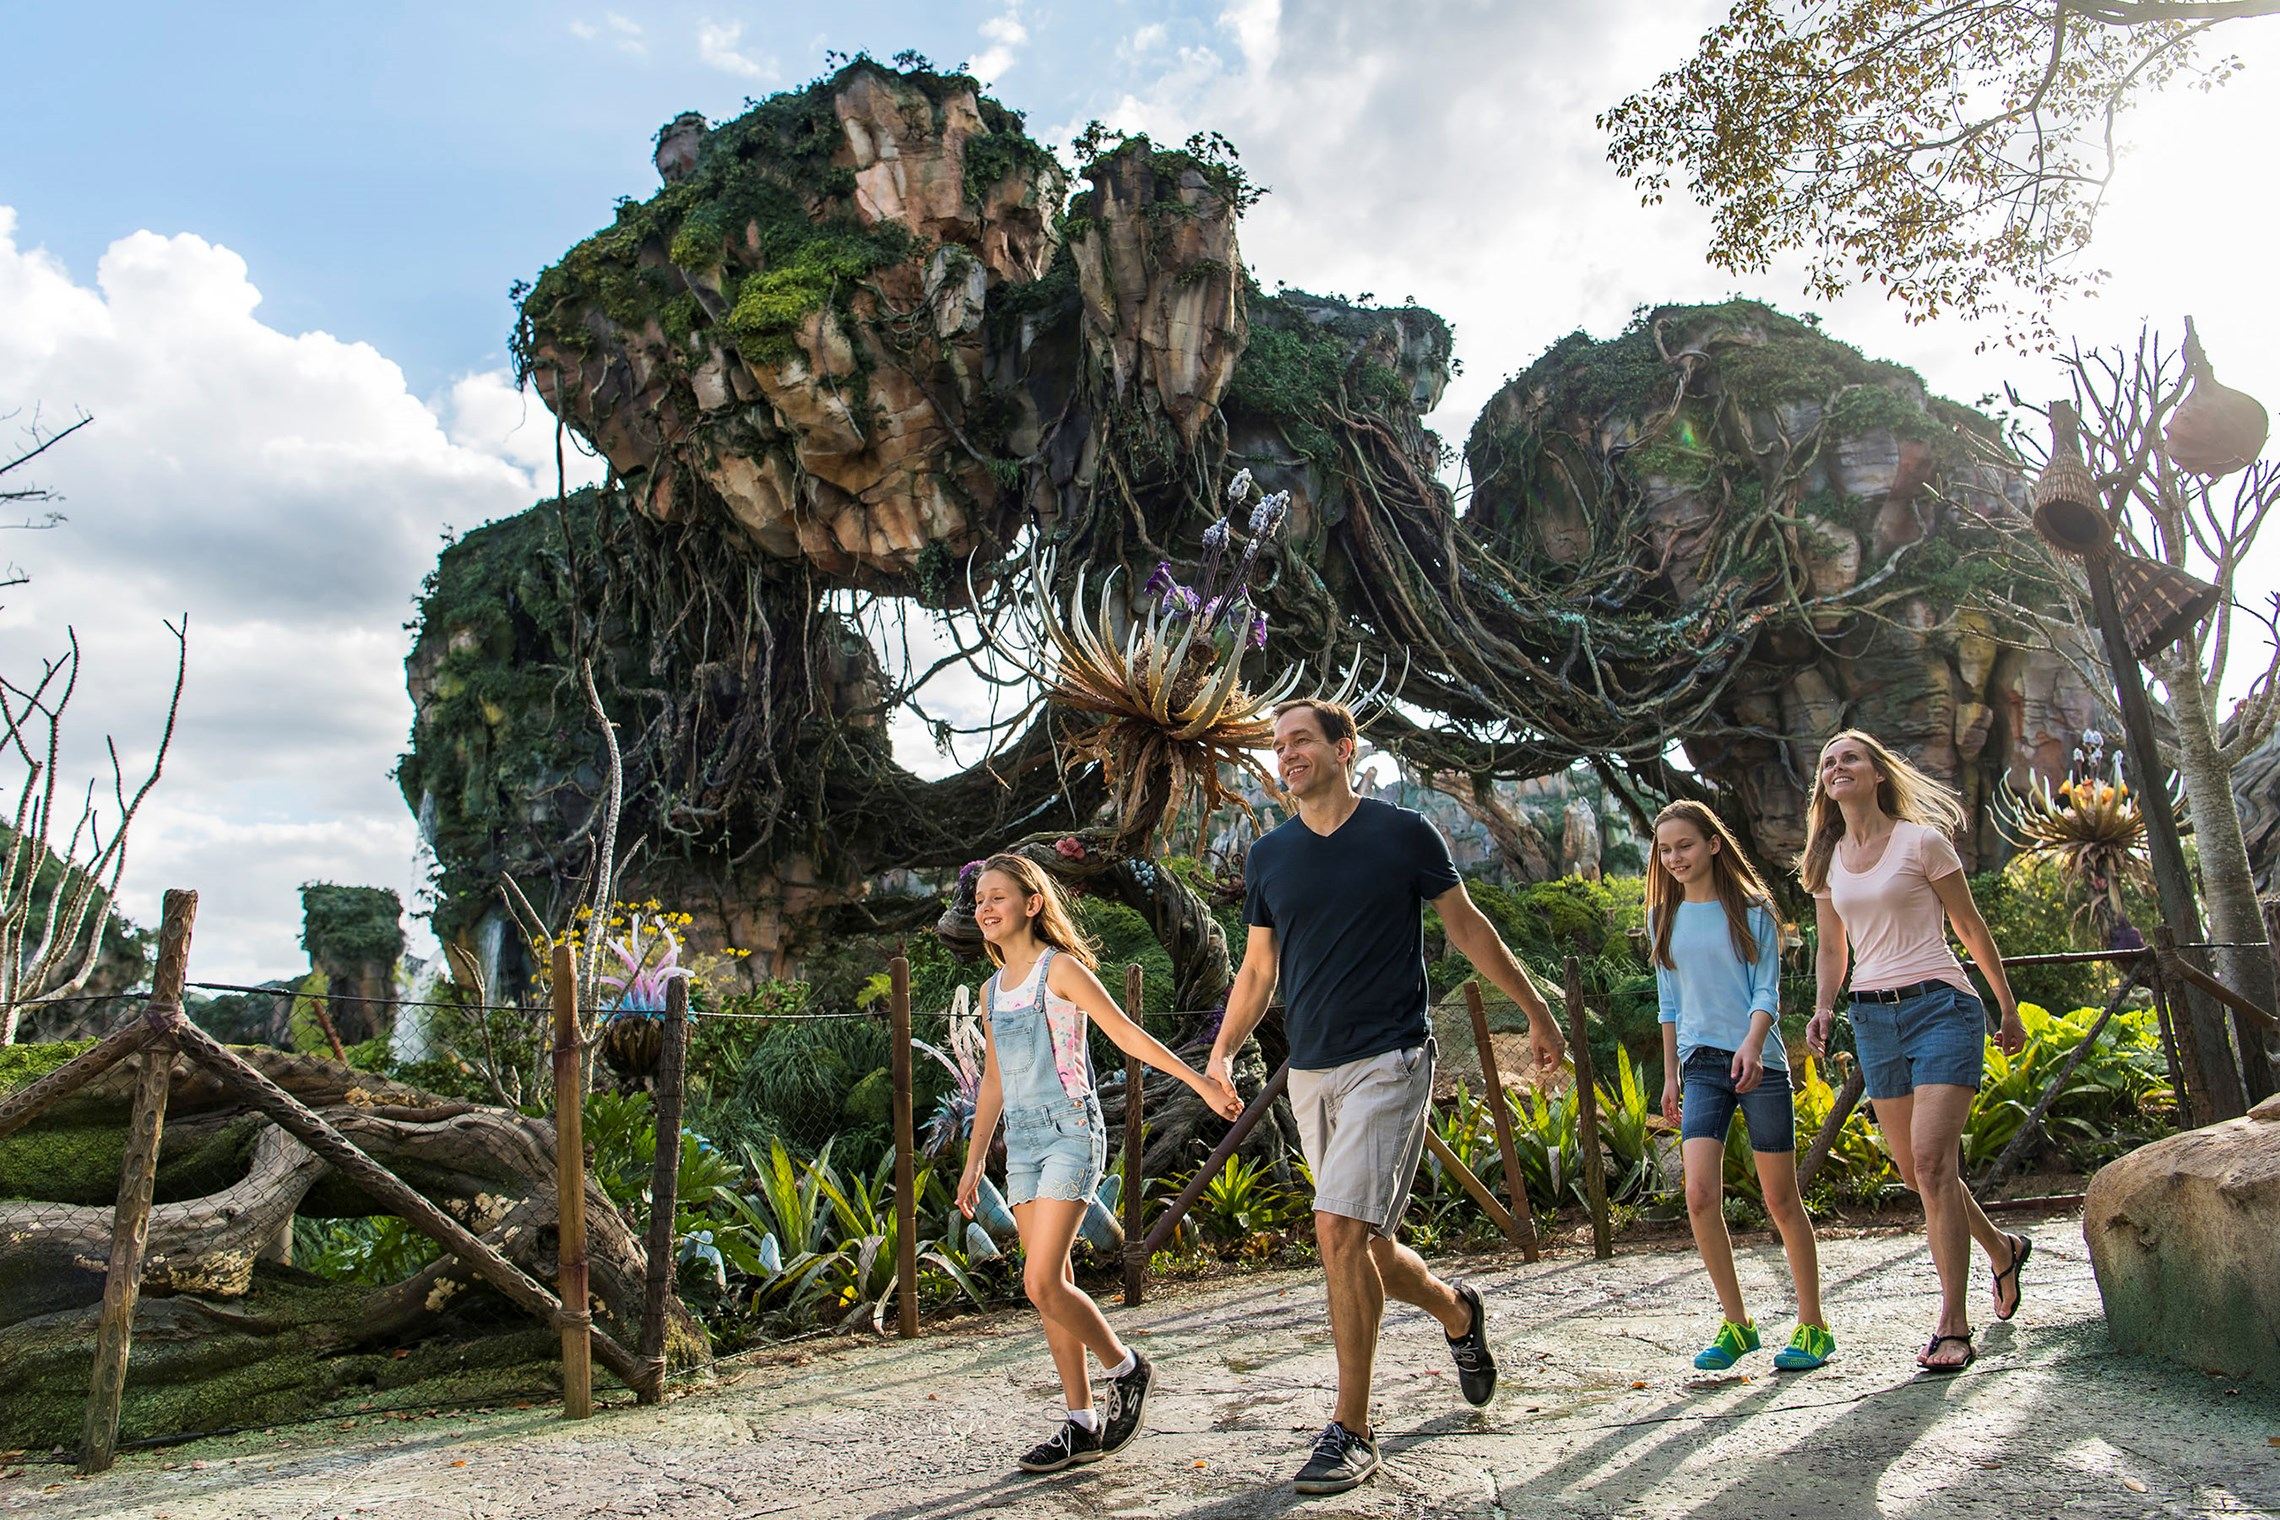 Learn about Annual Pass discounts at Walt Disney World Resort in Florida.